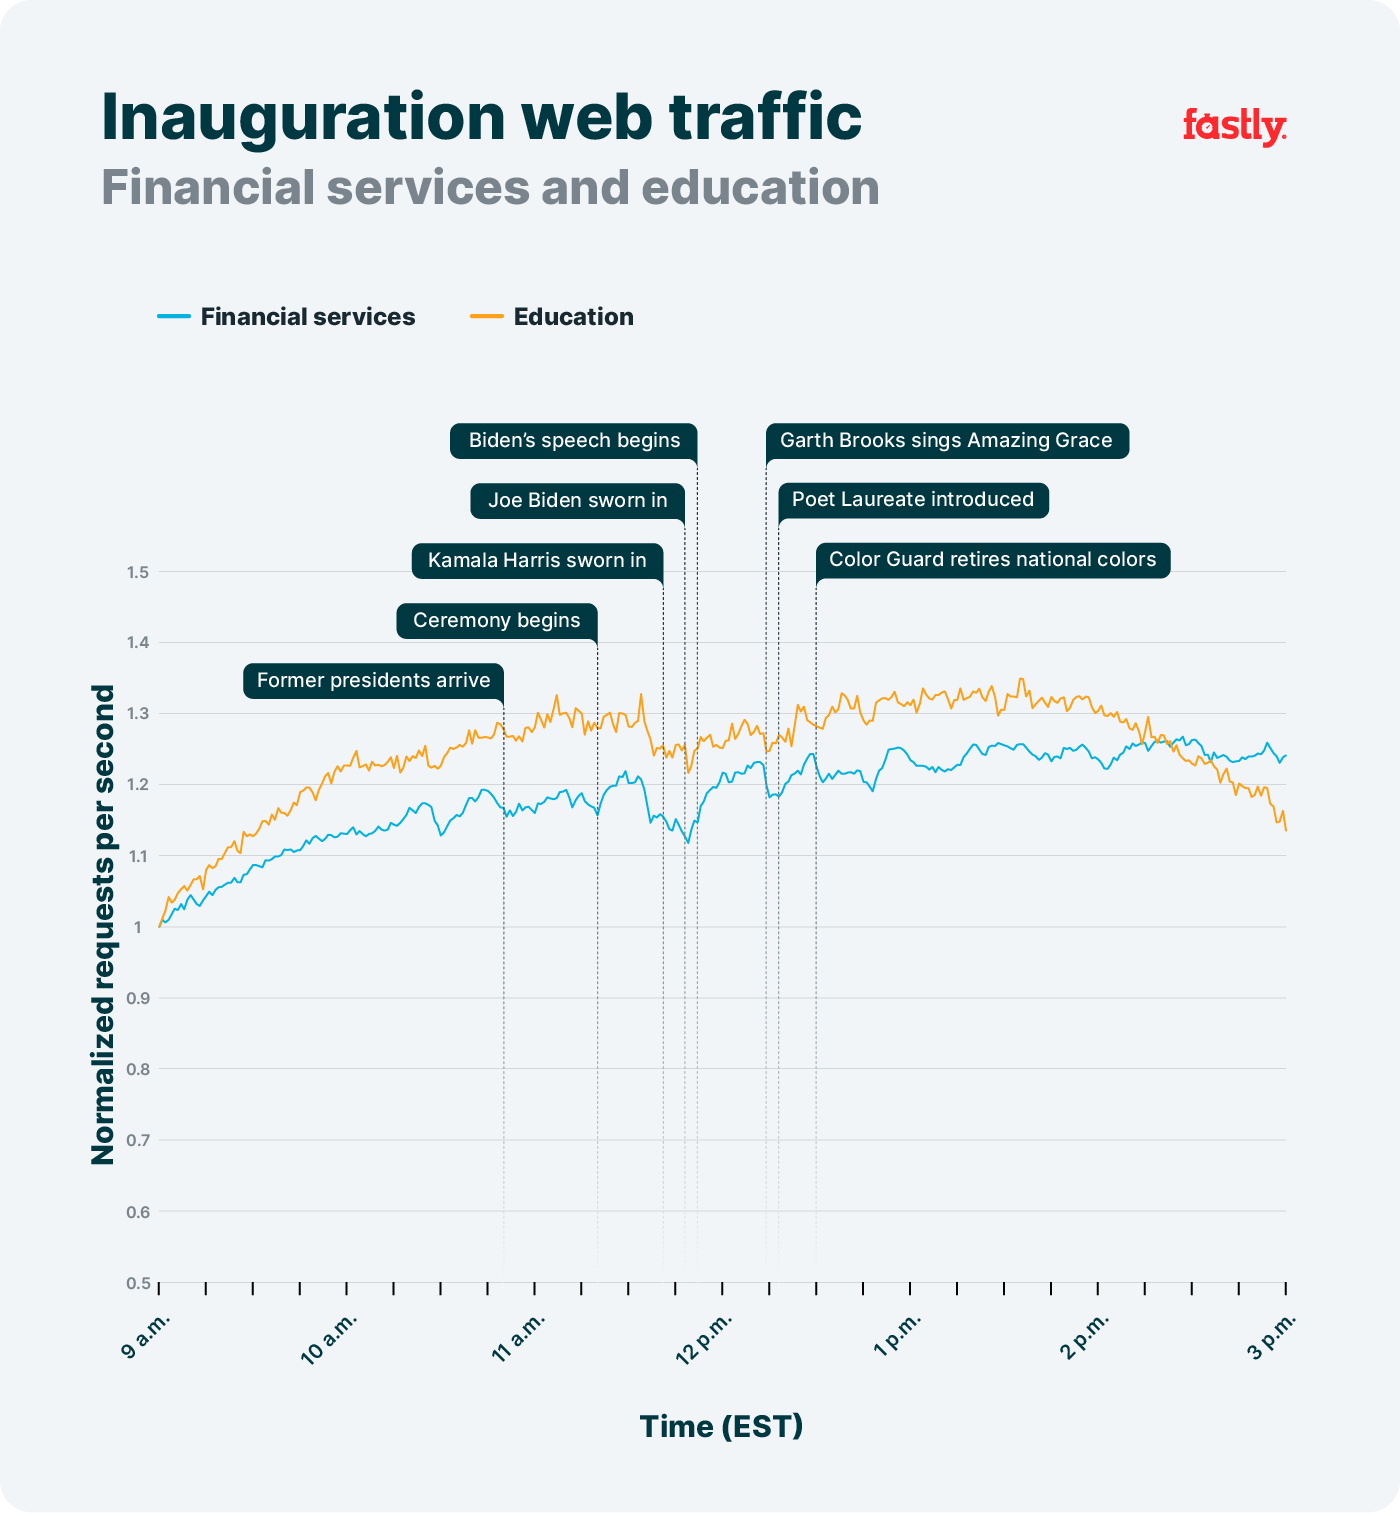 Finserv and education traffic during inauguration